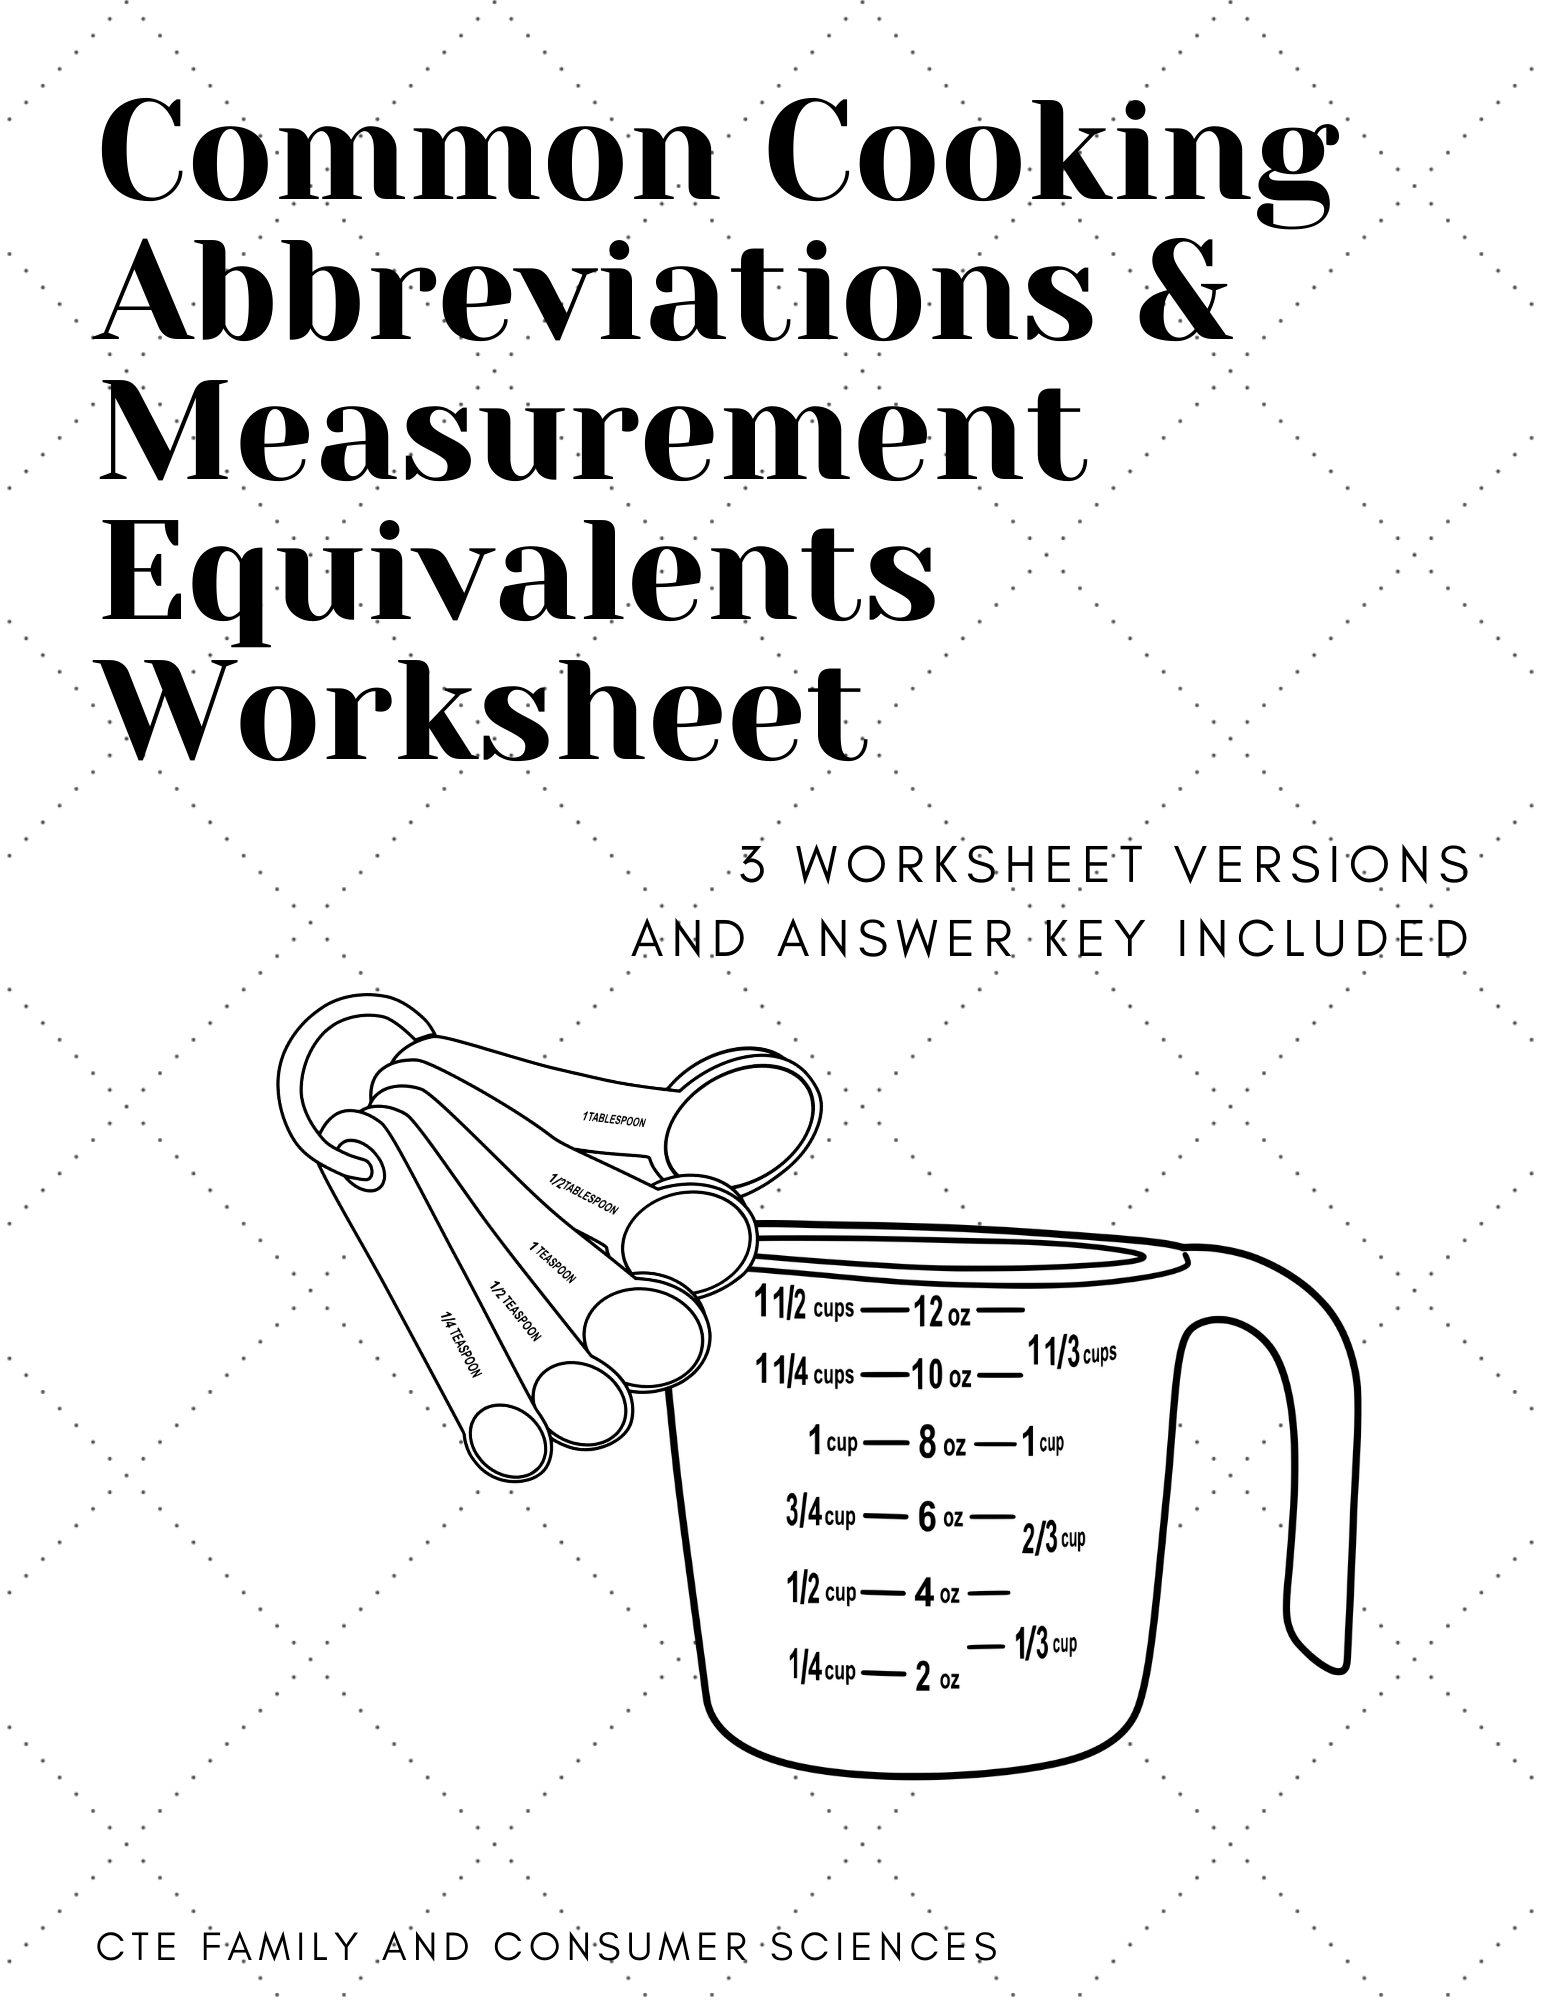 Common Cooking Abbreviations Measurement Equivalents Worksheet Family And Consumer Science Science Teaching Resources Teaching Science [ 2000 x 1545 Pixel ]